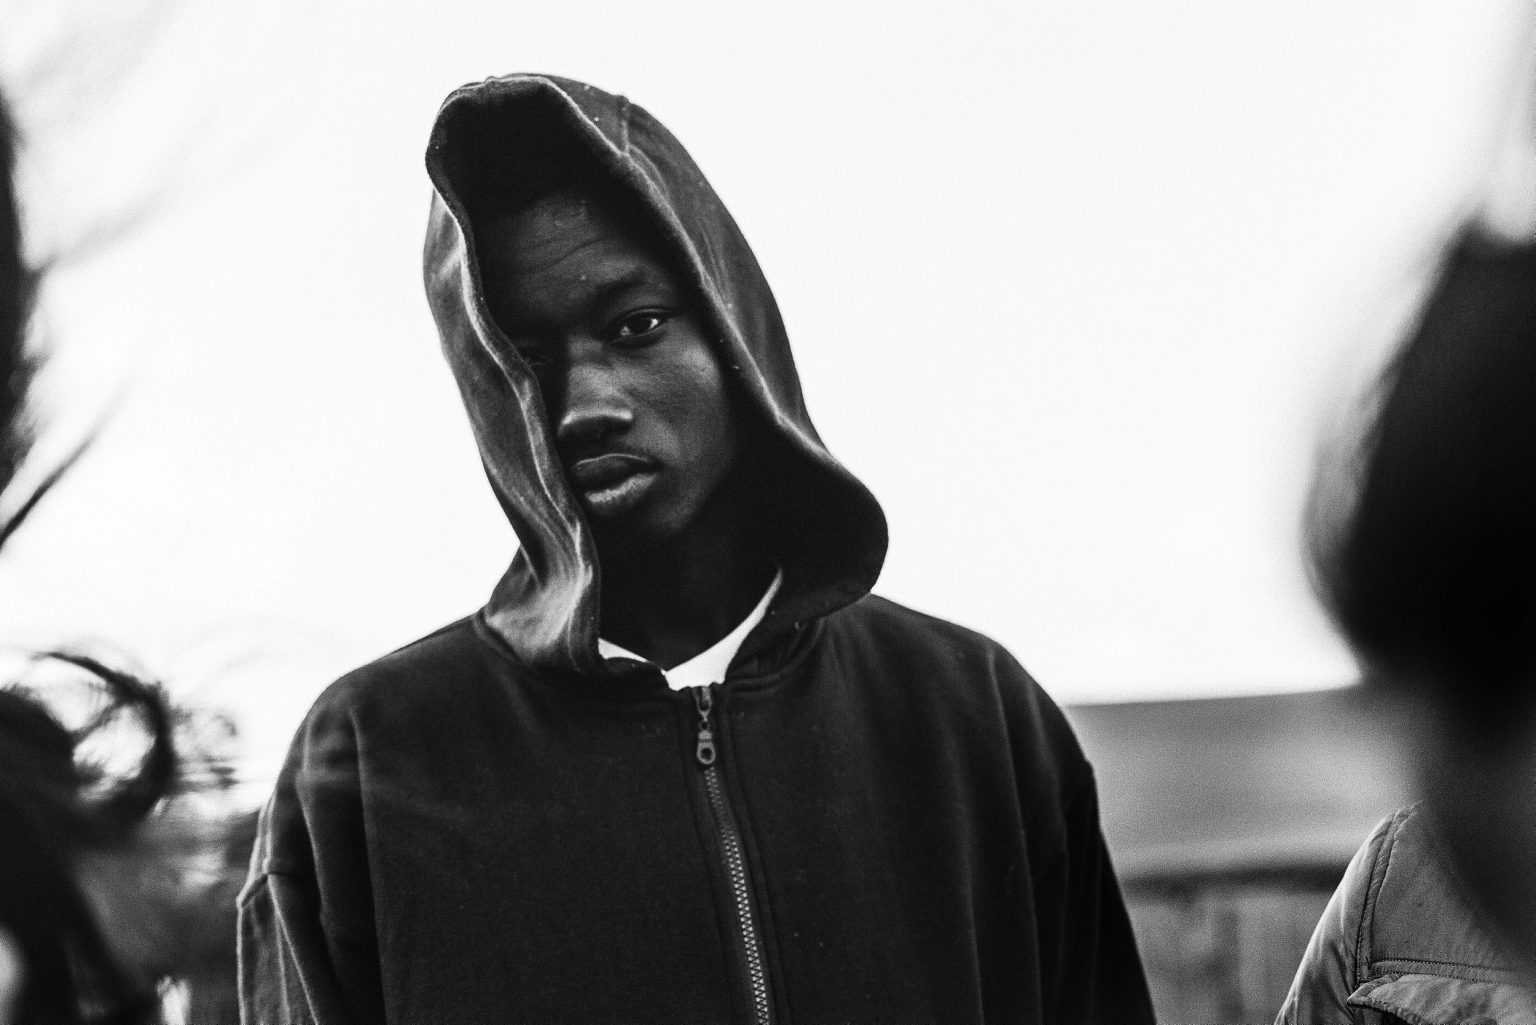 Ousmane Fofana, a young migrant from Mali. Melilla, Spain, 2014